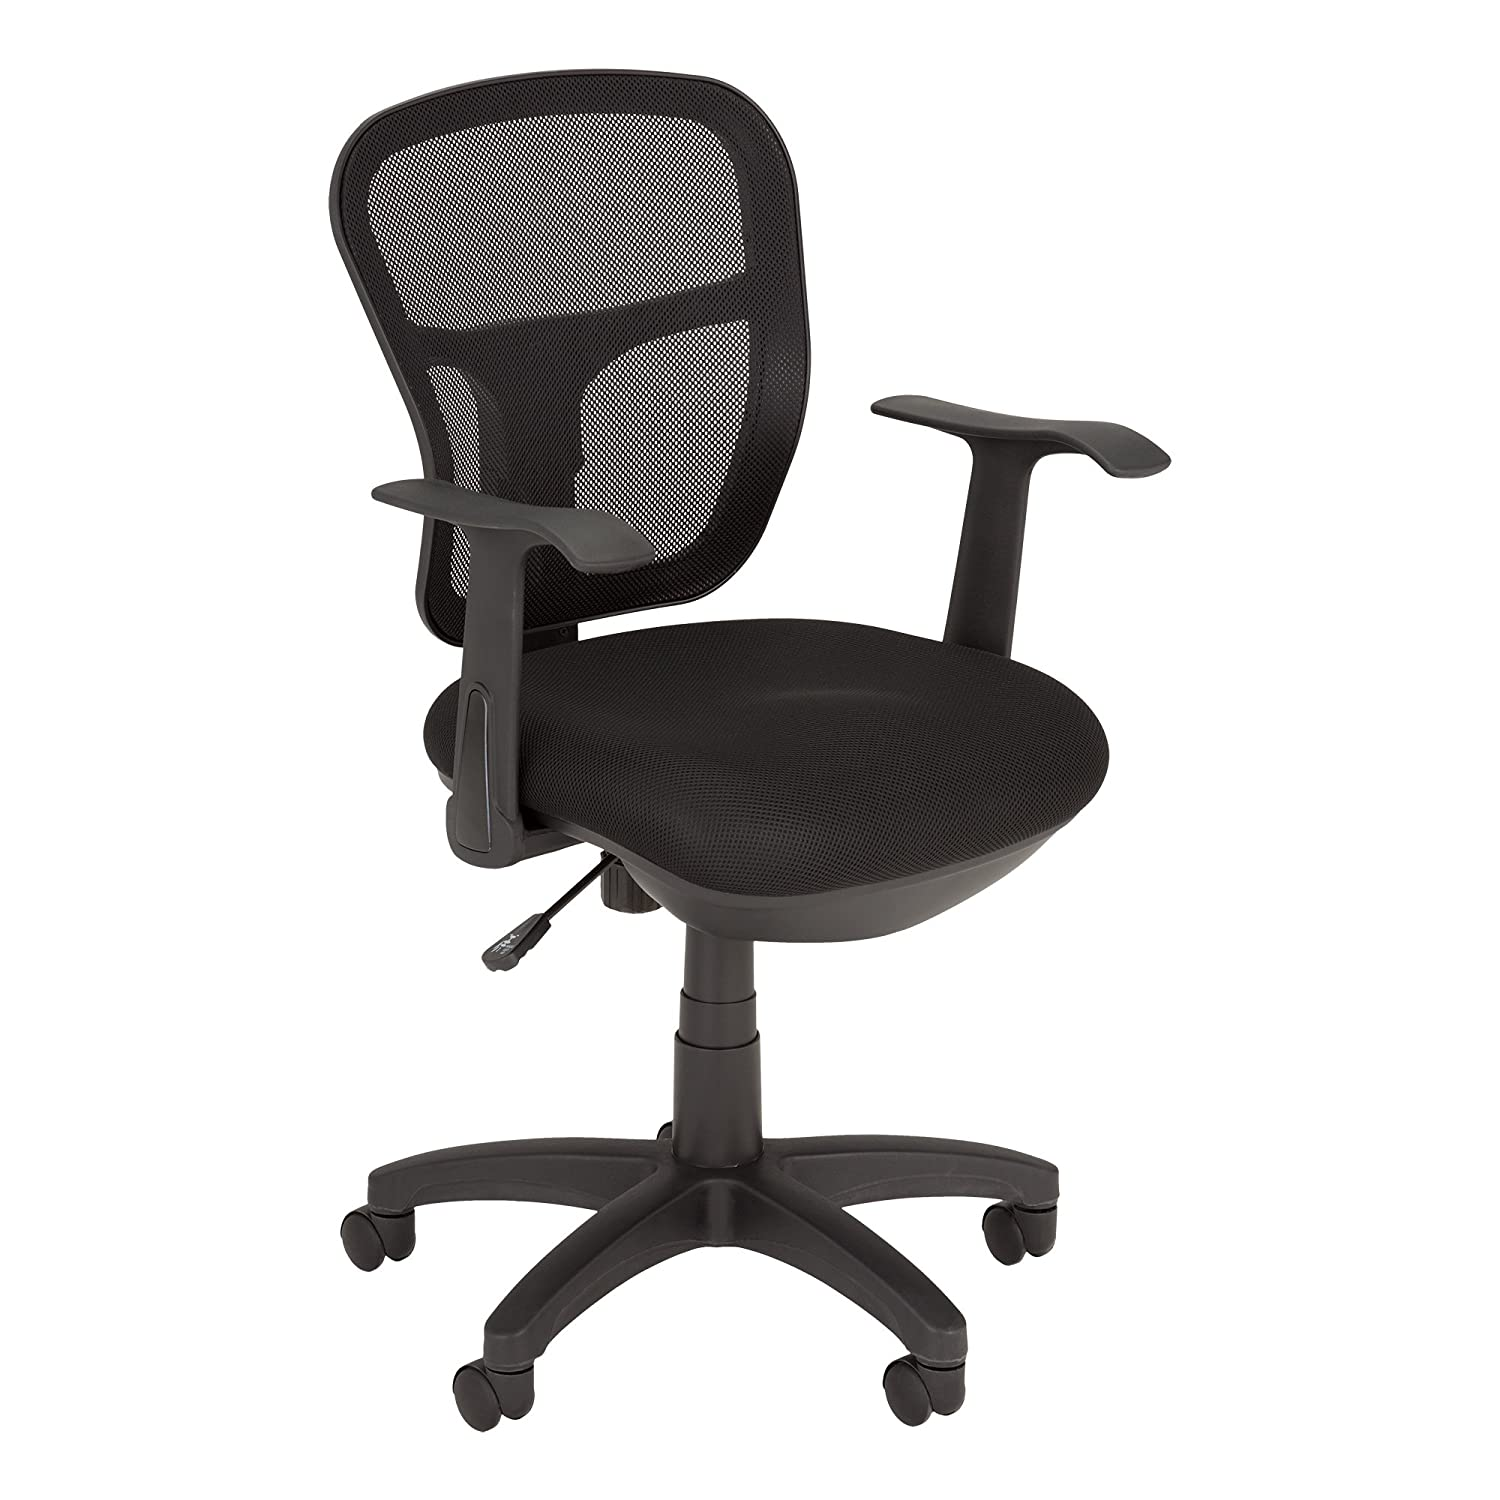 Norwood Commercial Furniture NOR-NAI1000-SO Mesh Back & Seat Task Chair, Black